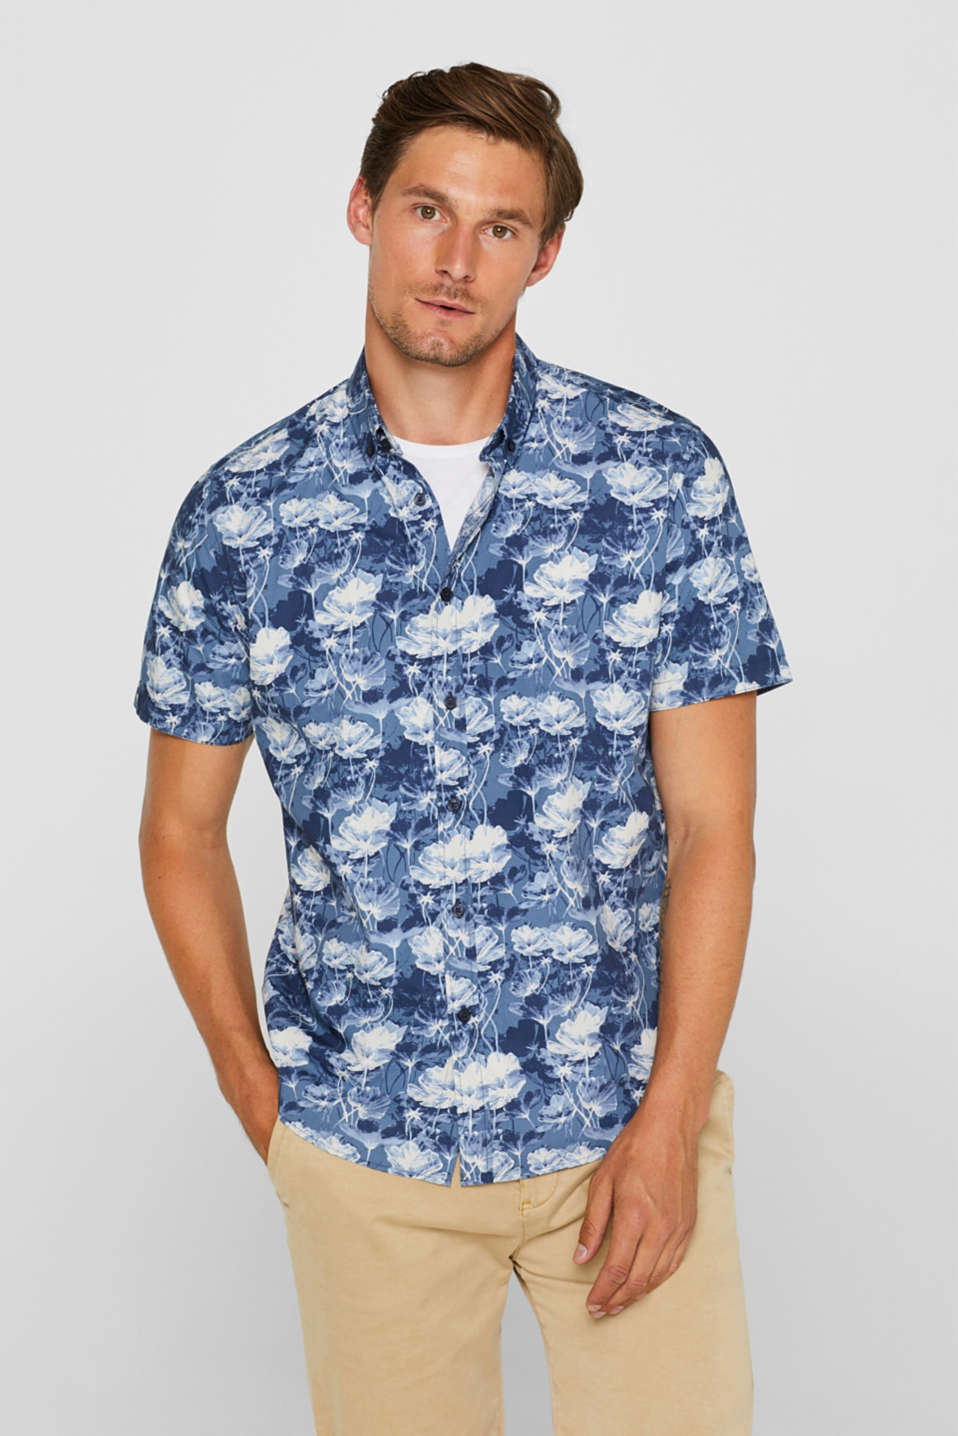 Esprit - Short-sleeved shirt with a floral print, 100% cotton